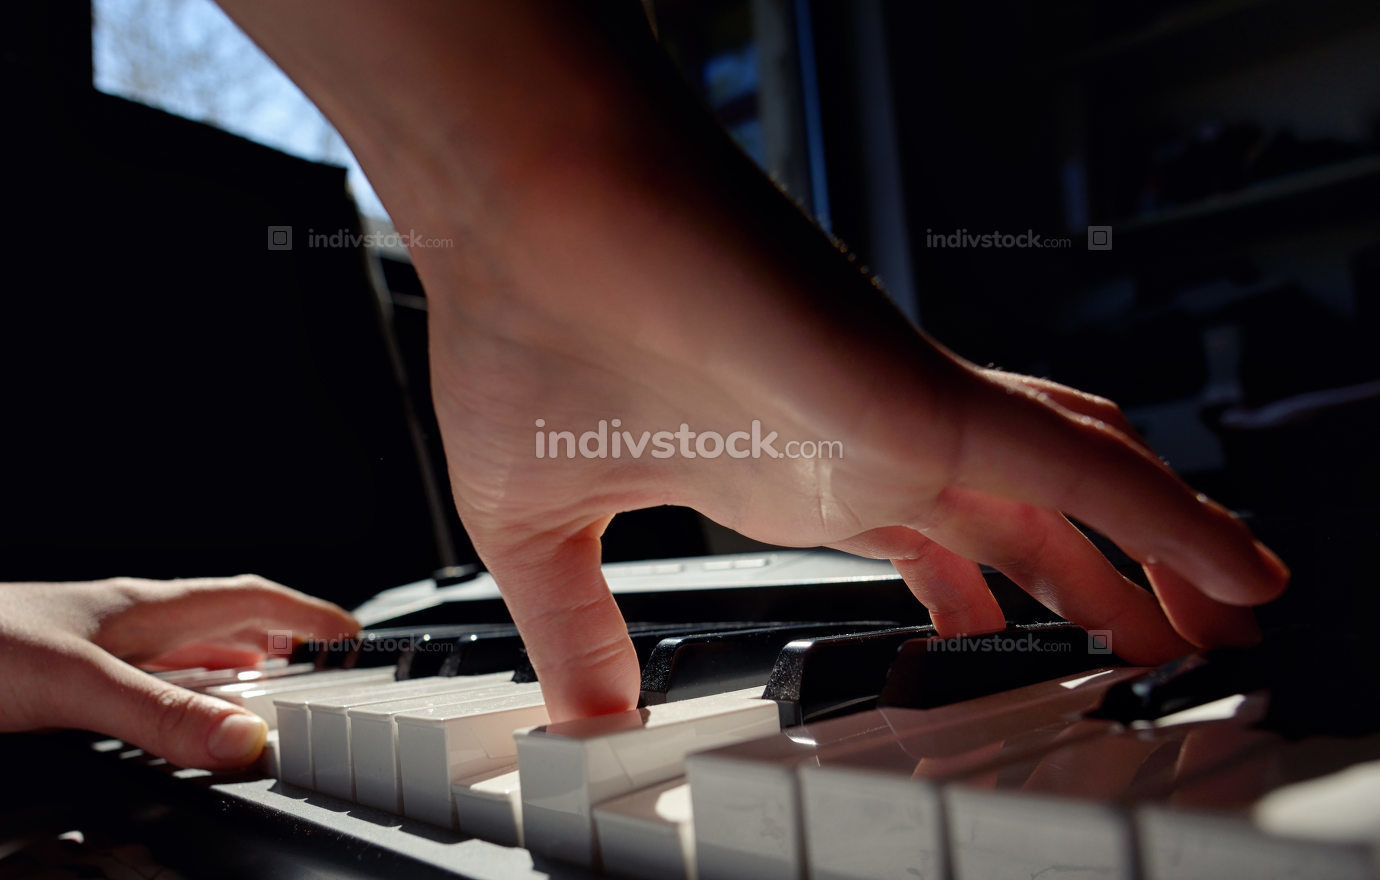 Details of Hands playing piano